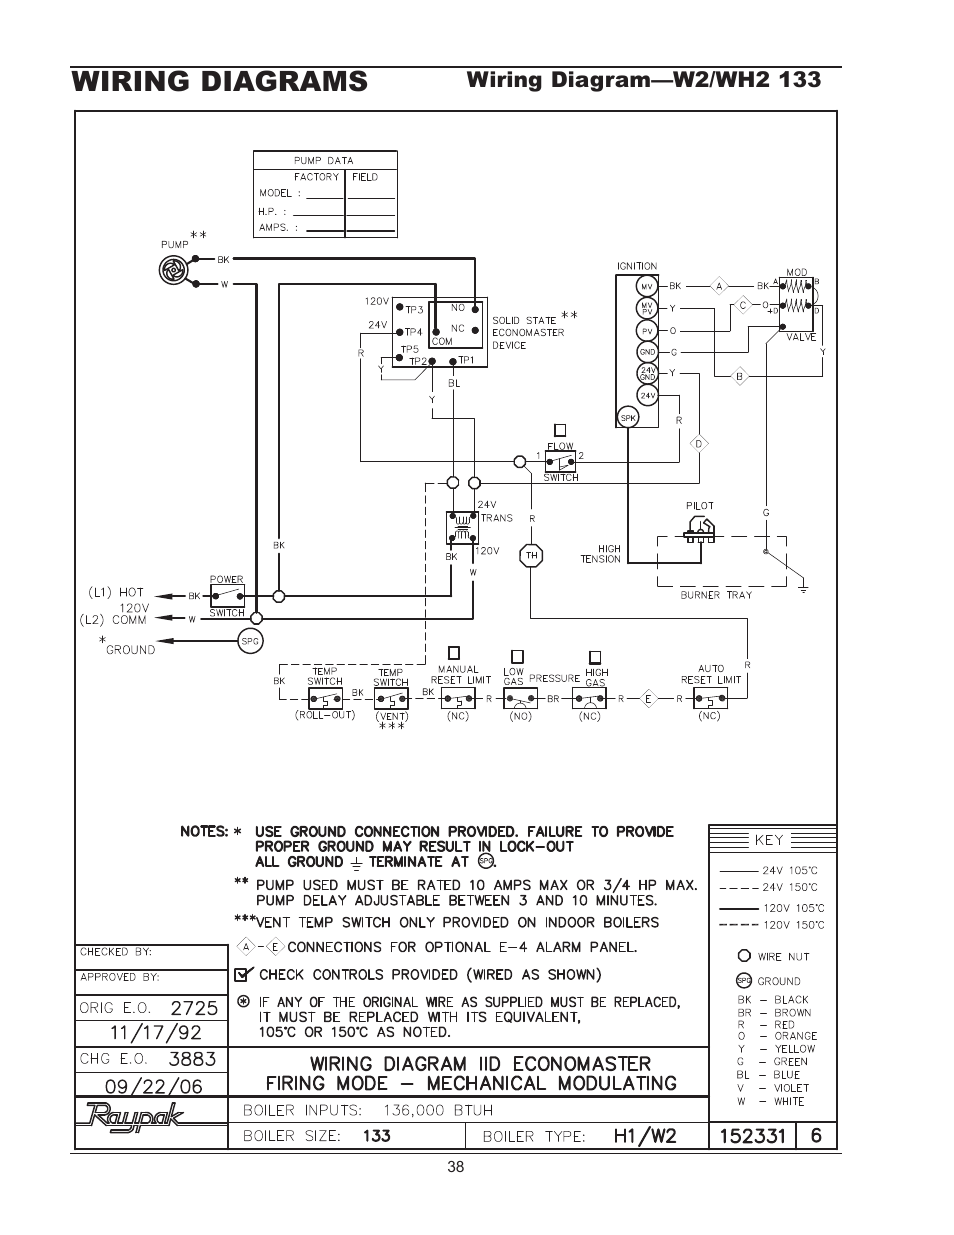 Wiring diagrams, Wiring diagram—wh1 0181/0261 | Raypak 1334001 User Manual  | Page 38 / 52